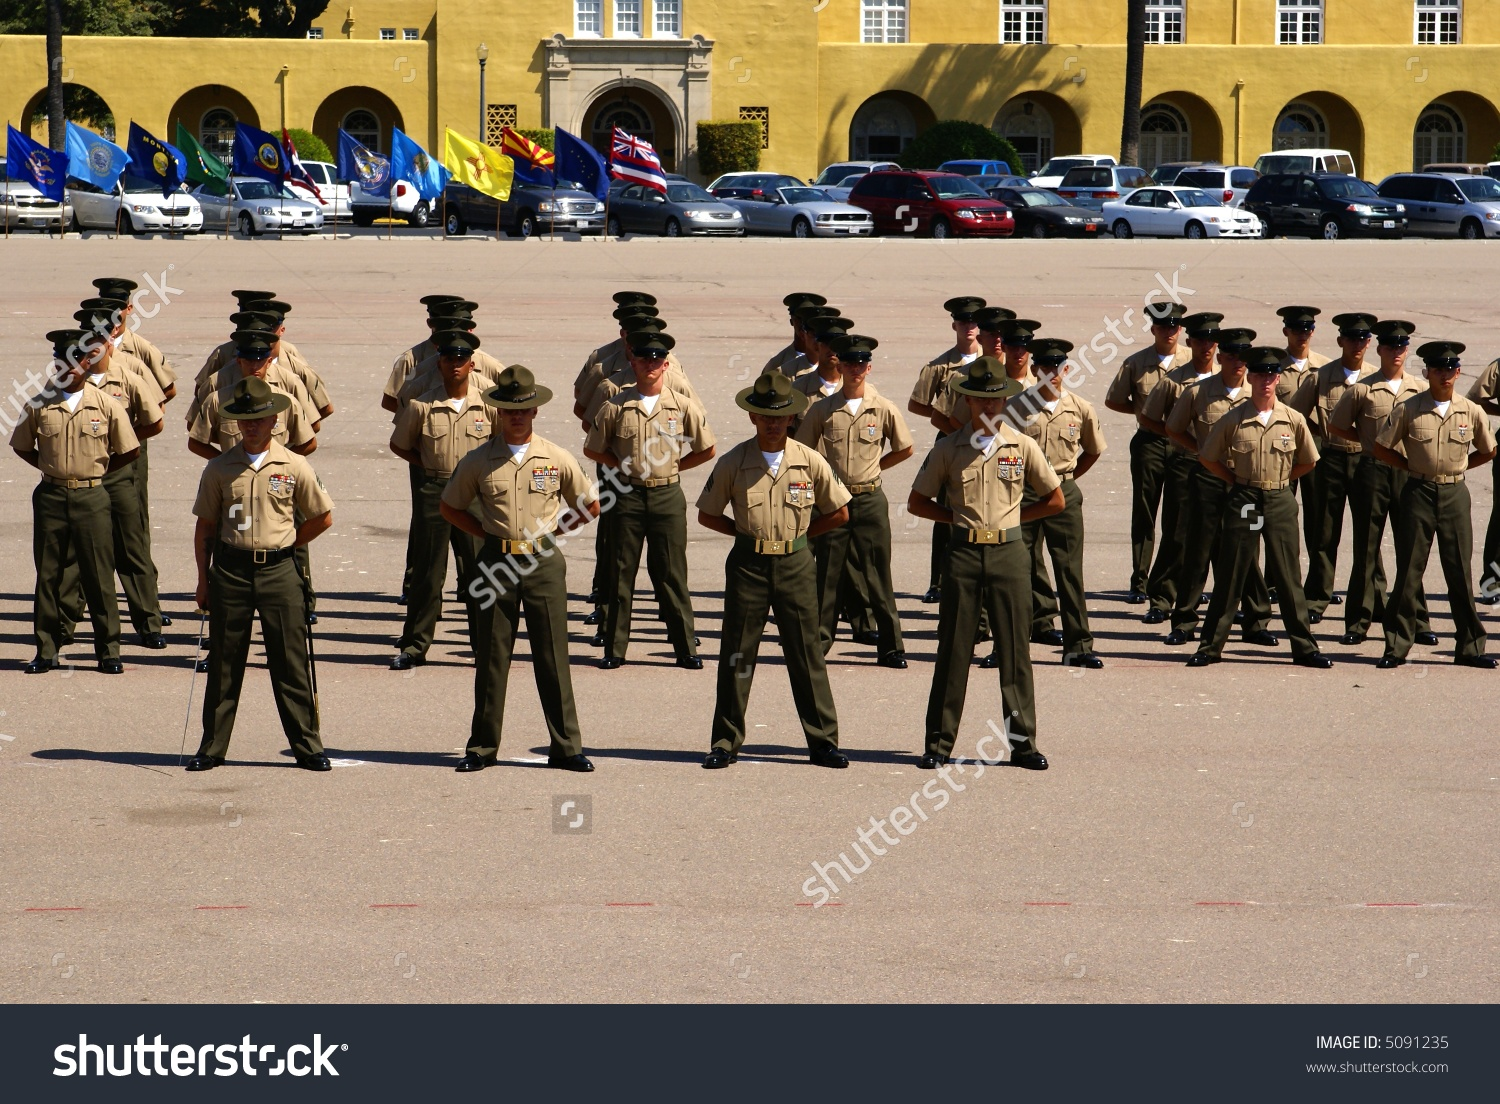 New Marines Standing Parade Rest Drill Stock Photo 5091235.